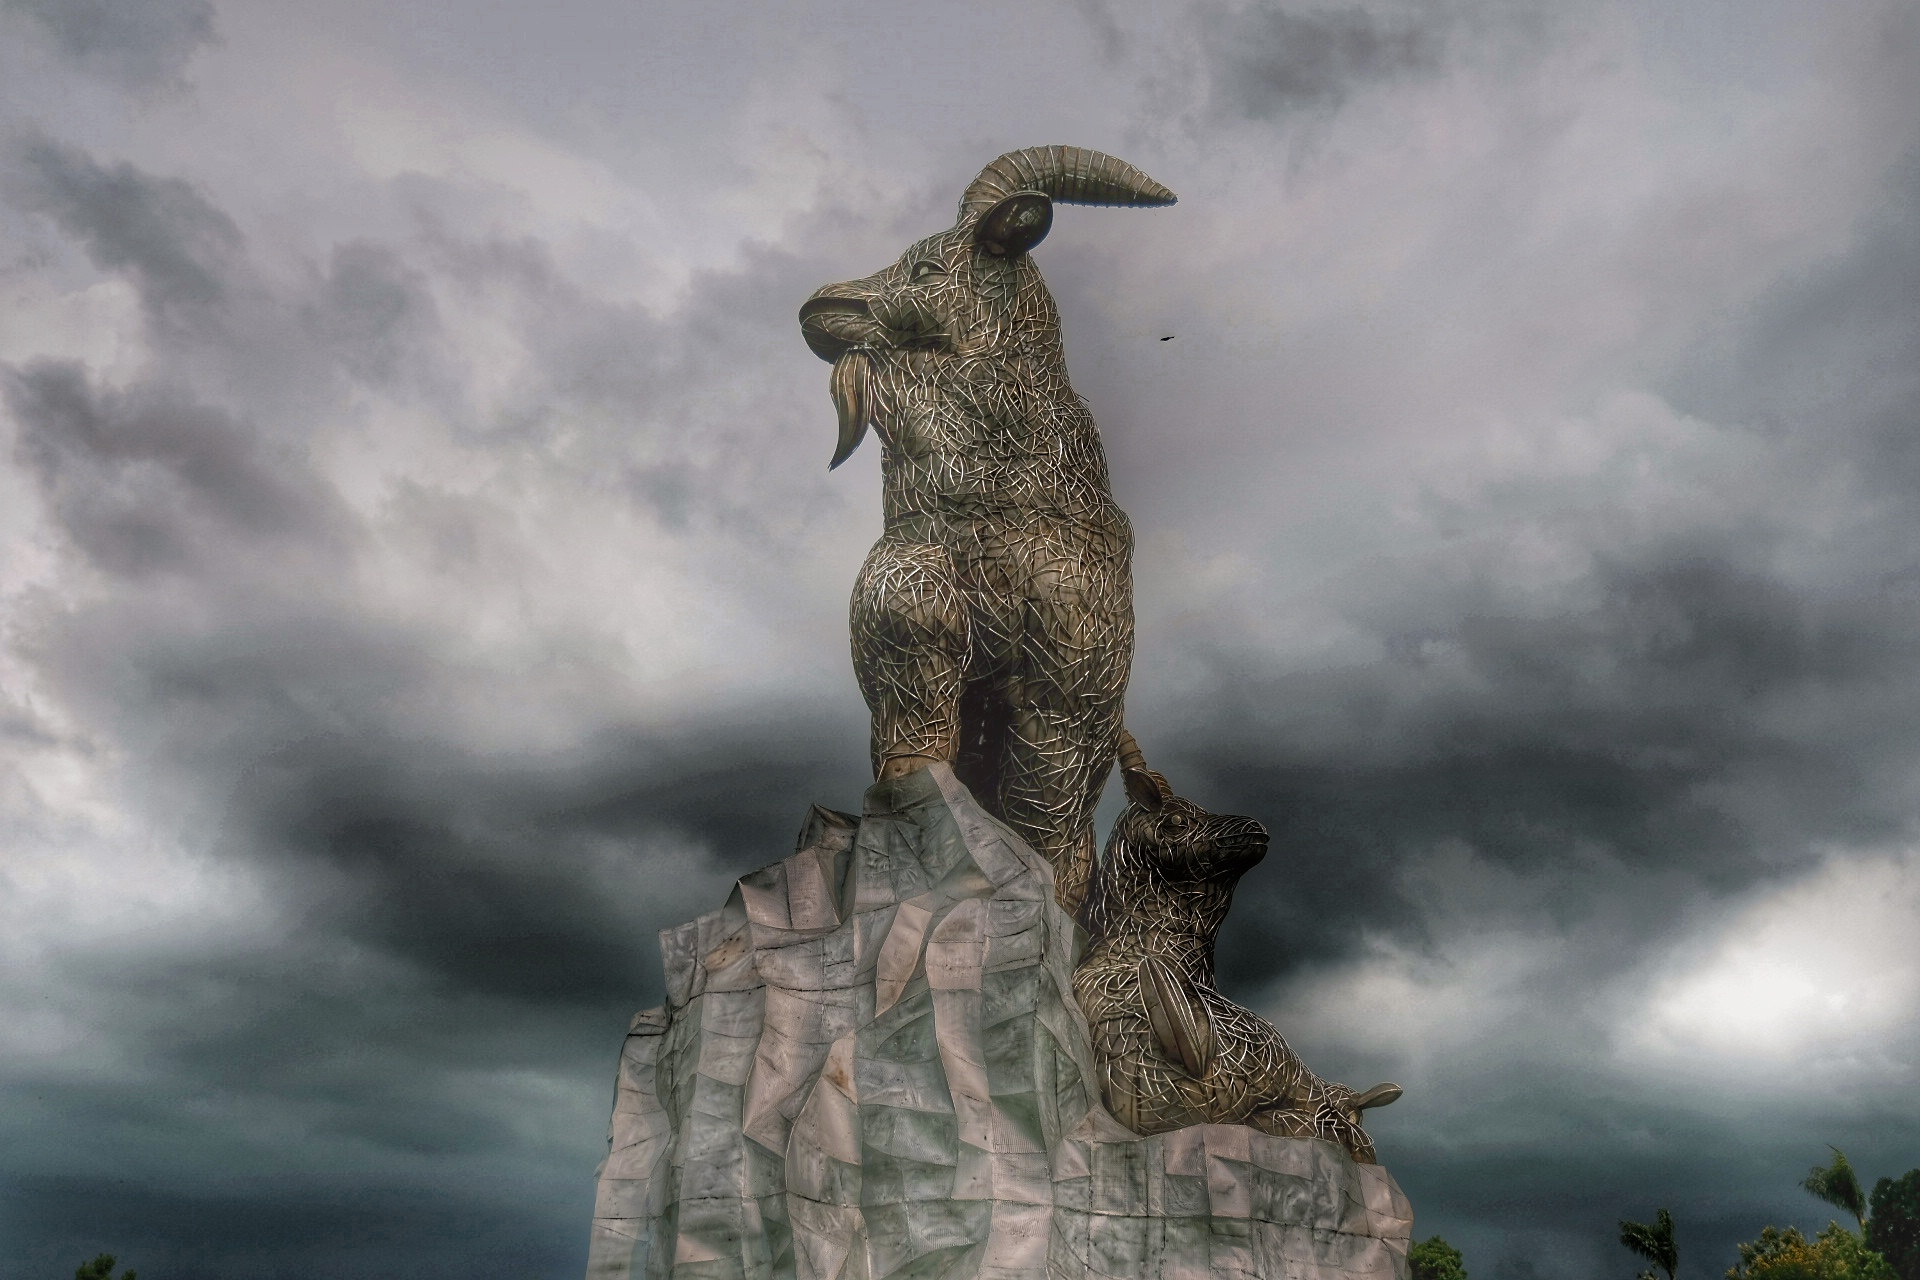 Statues of Mountain Goats in Taichung Park.